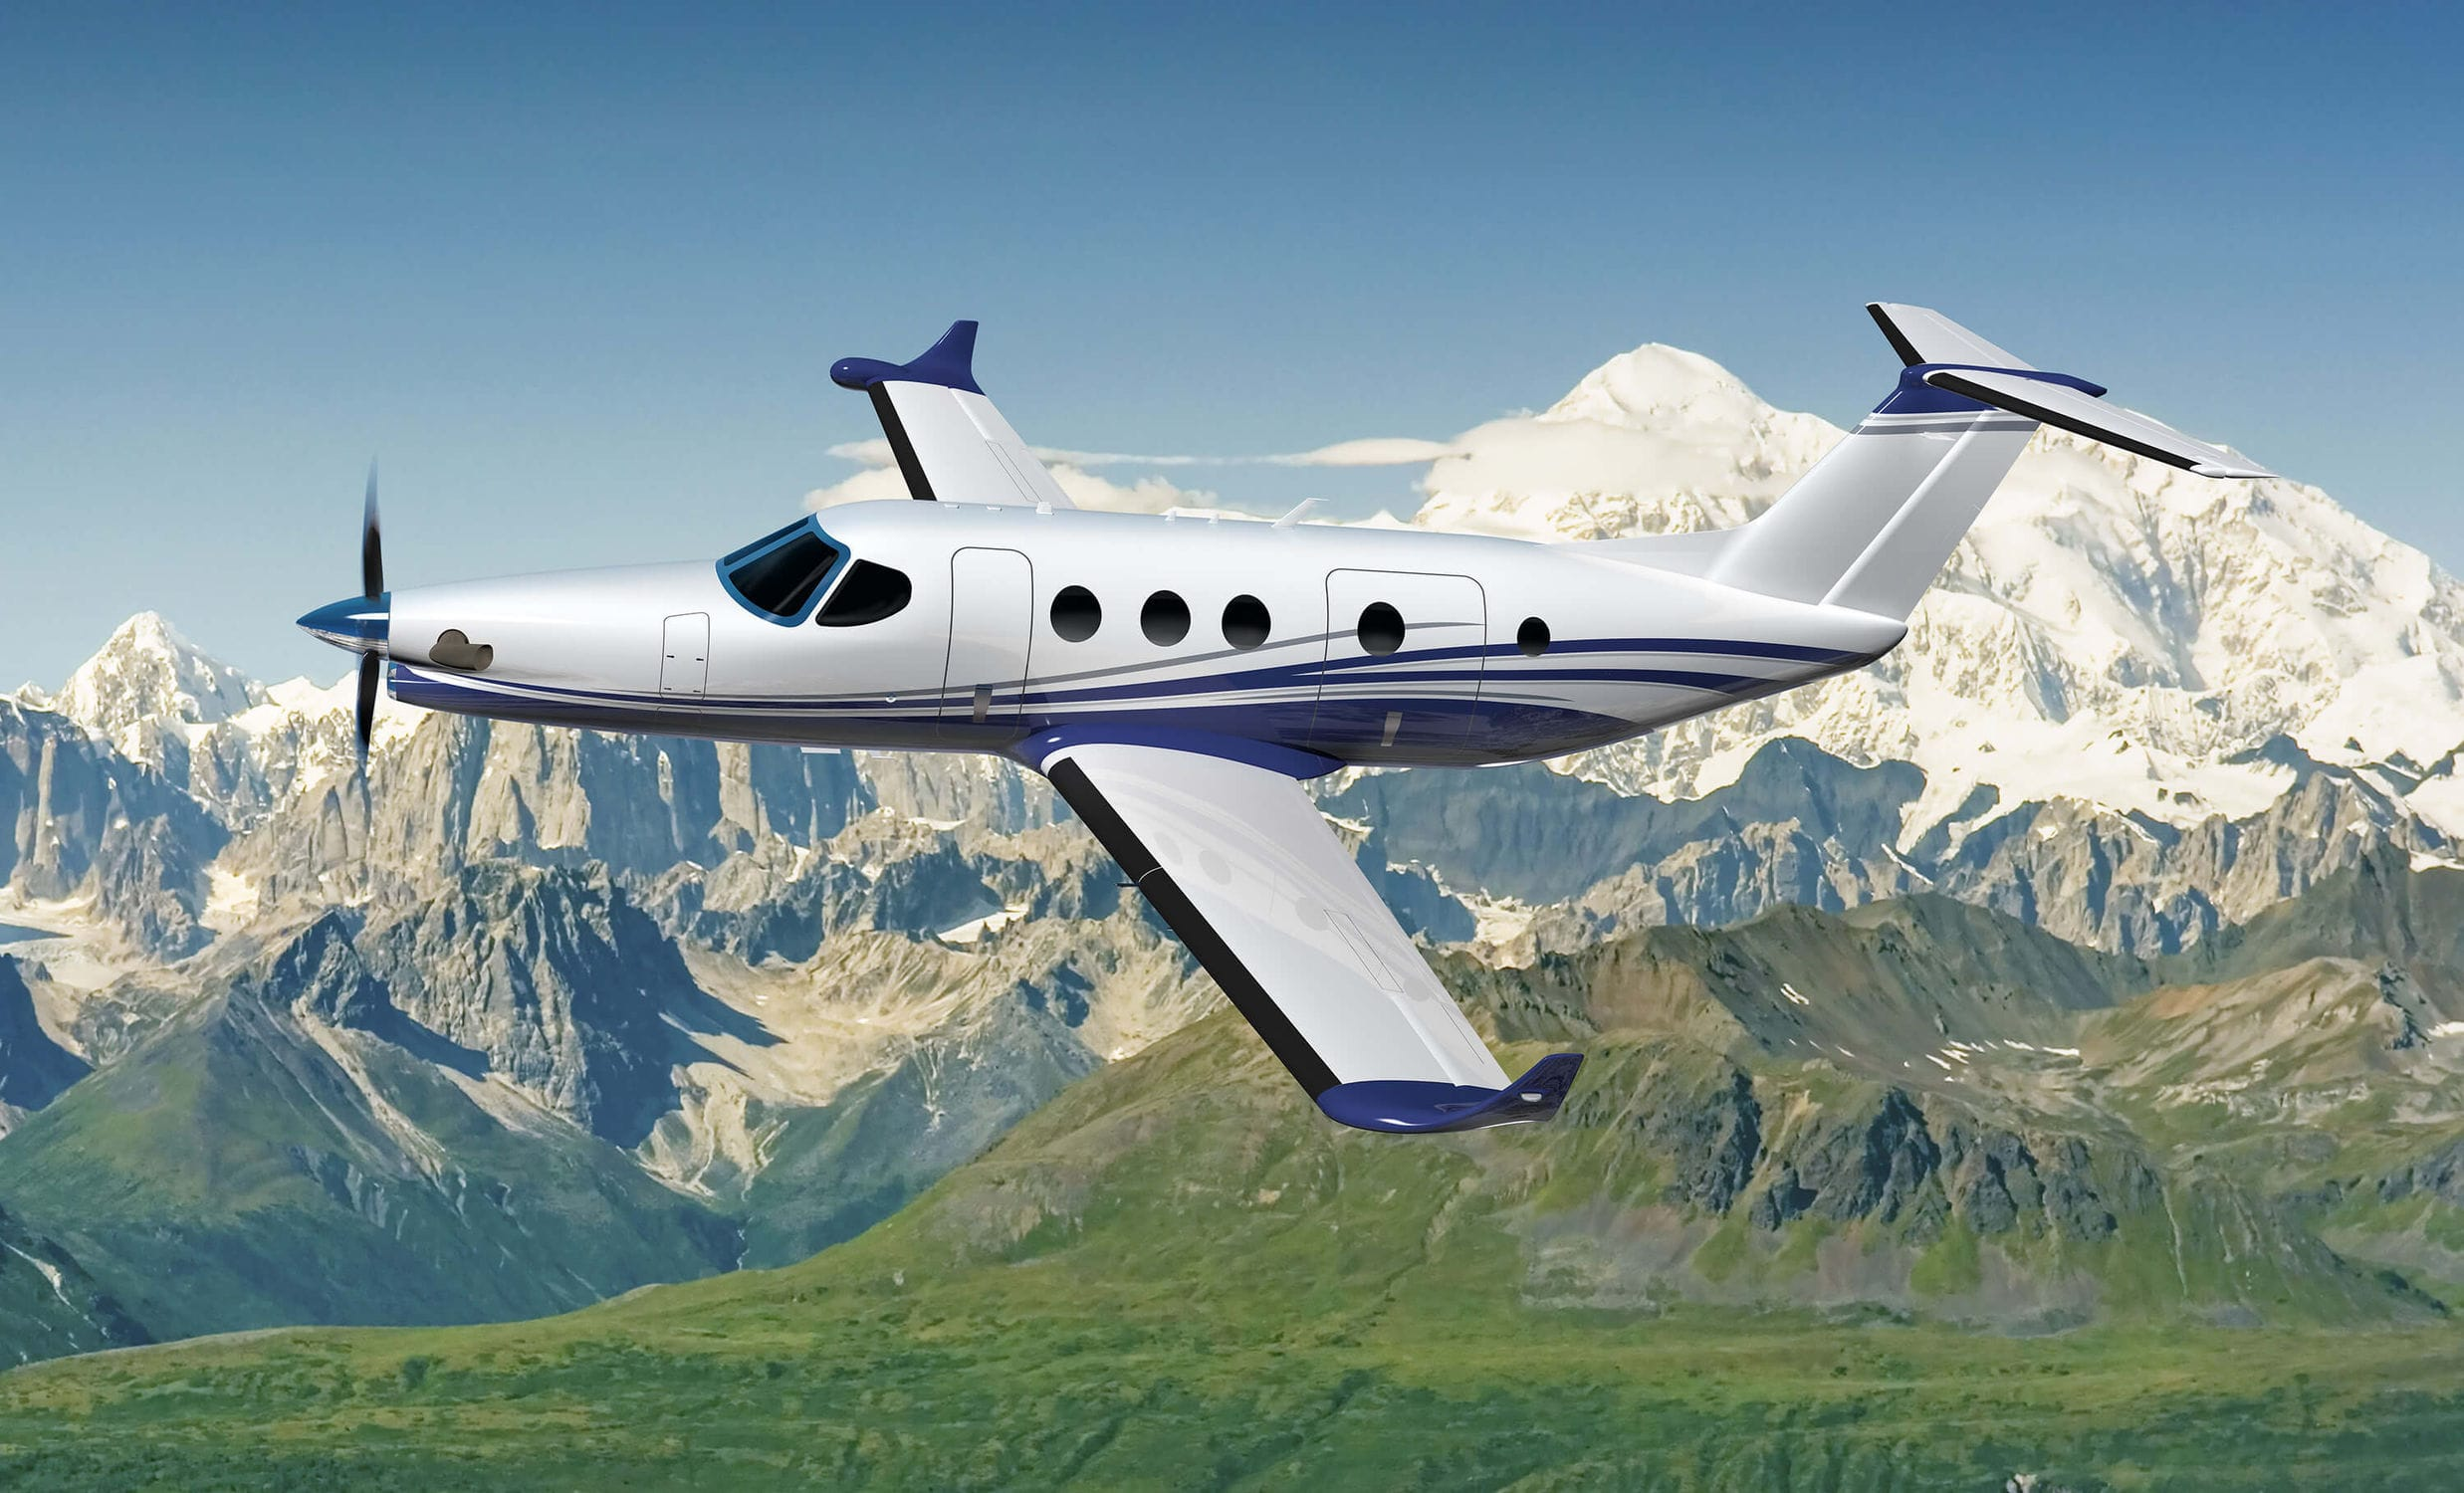 10-seater private plane - Denali - CESSNA AIRCRAFT COMPANY - 11-seater / 8- seater / 9-seater